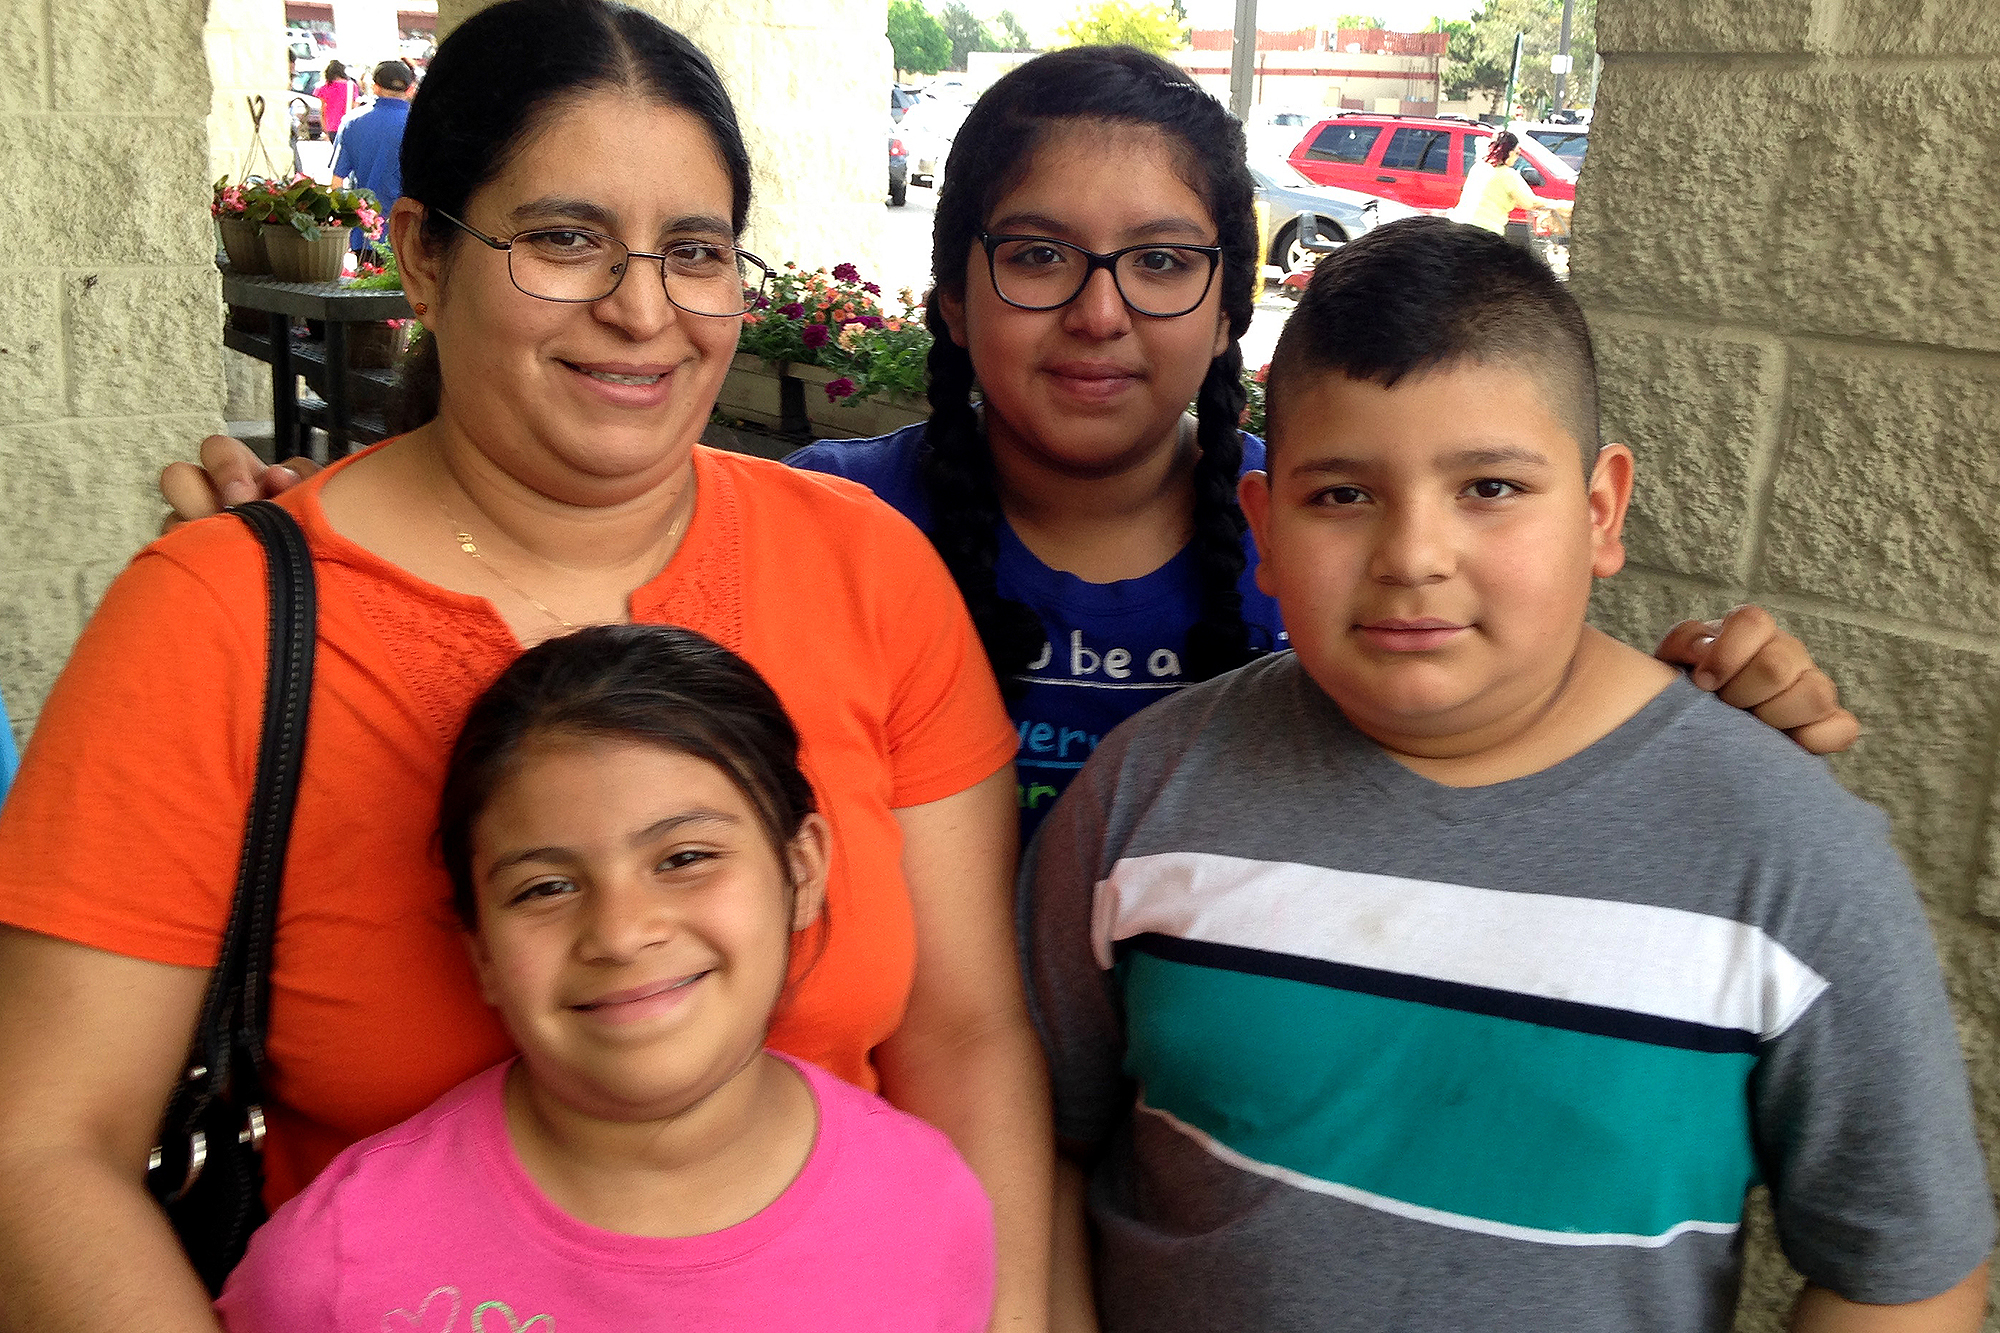 <p>Argelia Sanchez, with her children Yohely, Yaritza and Yovany, on a recent visit to a grocery story in Aurora, as part of the Rocky Mountain Youth Clinics Get Fit program.</p>